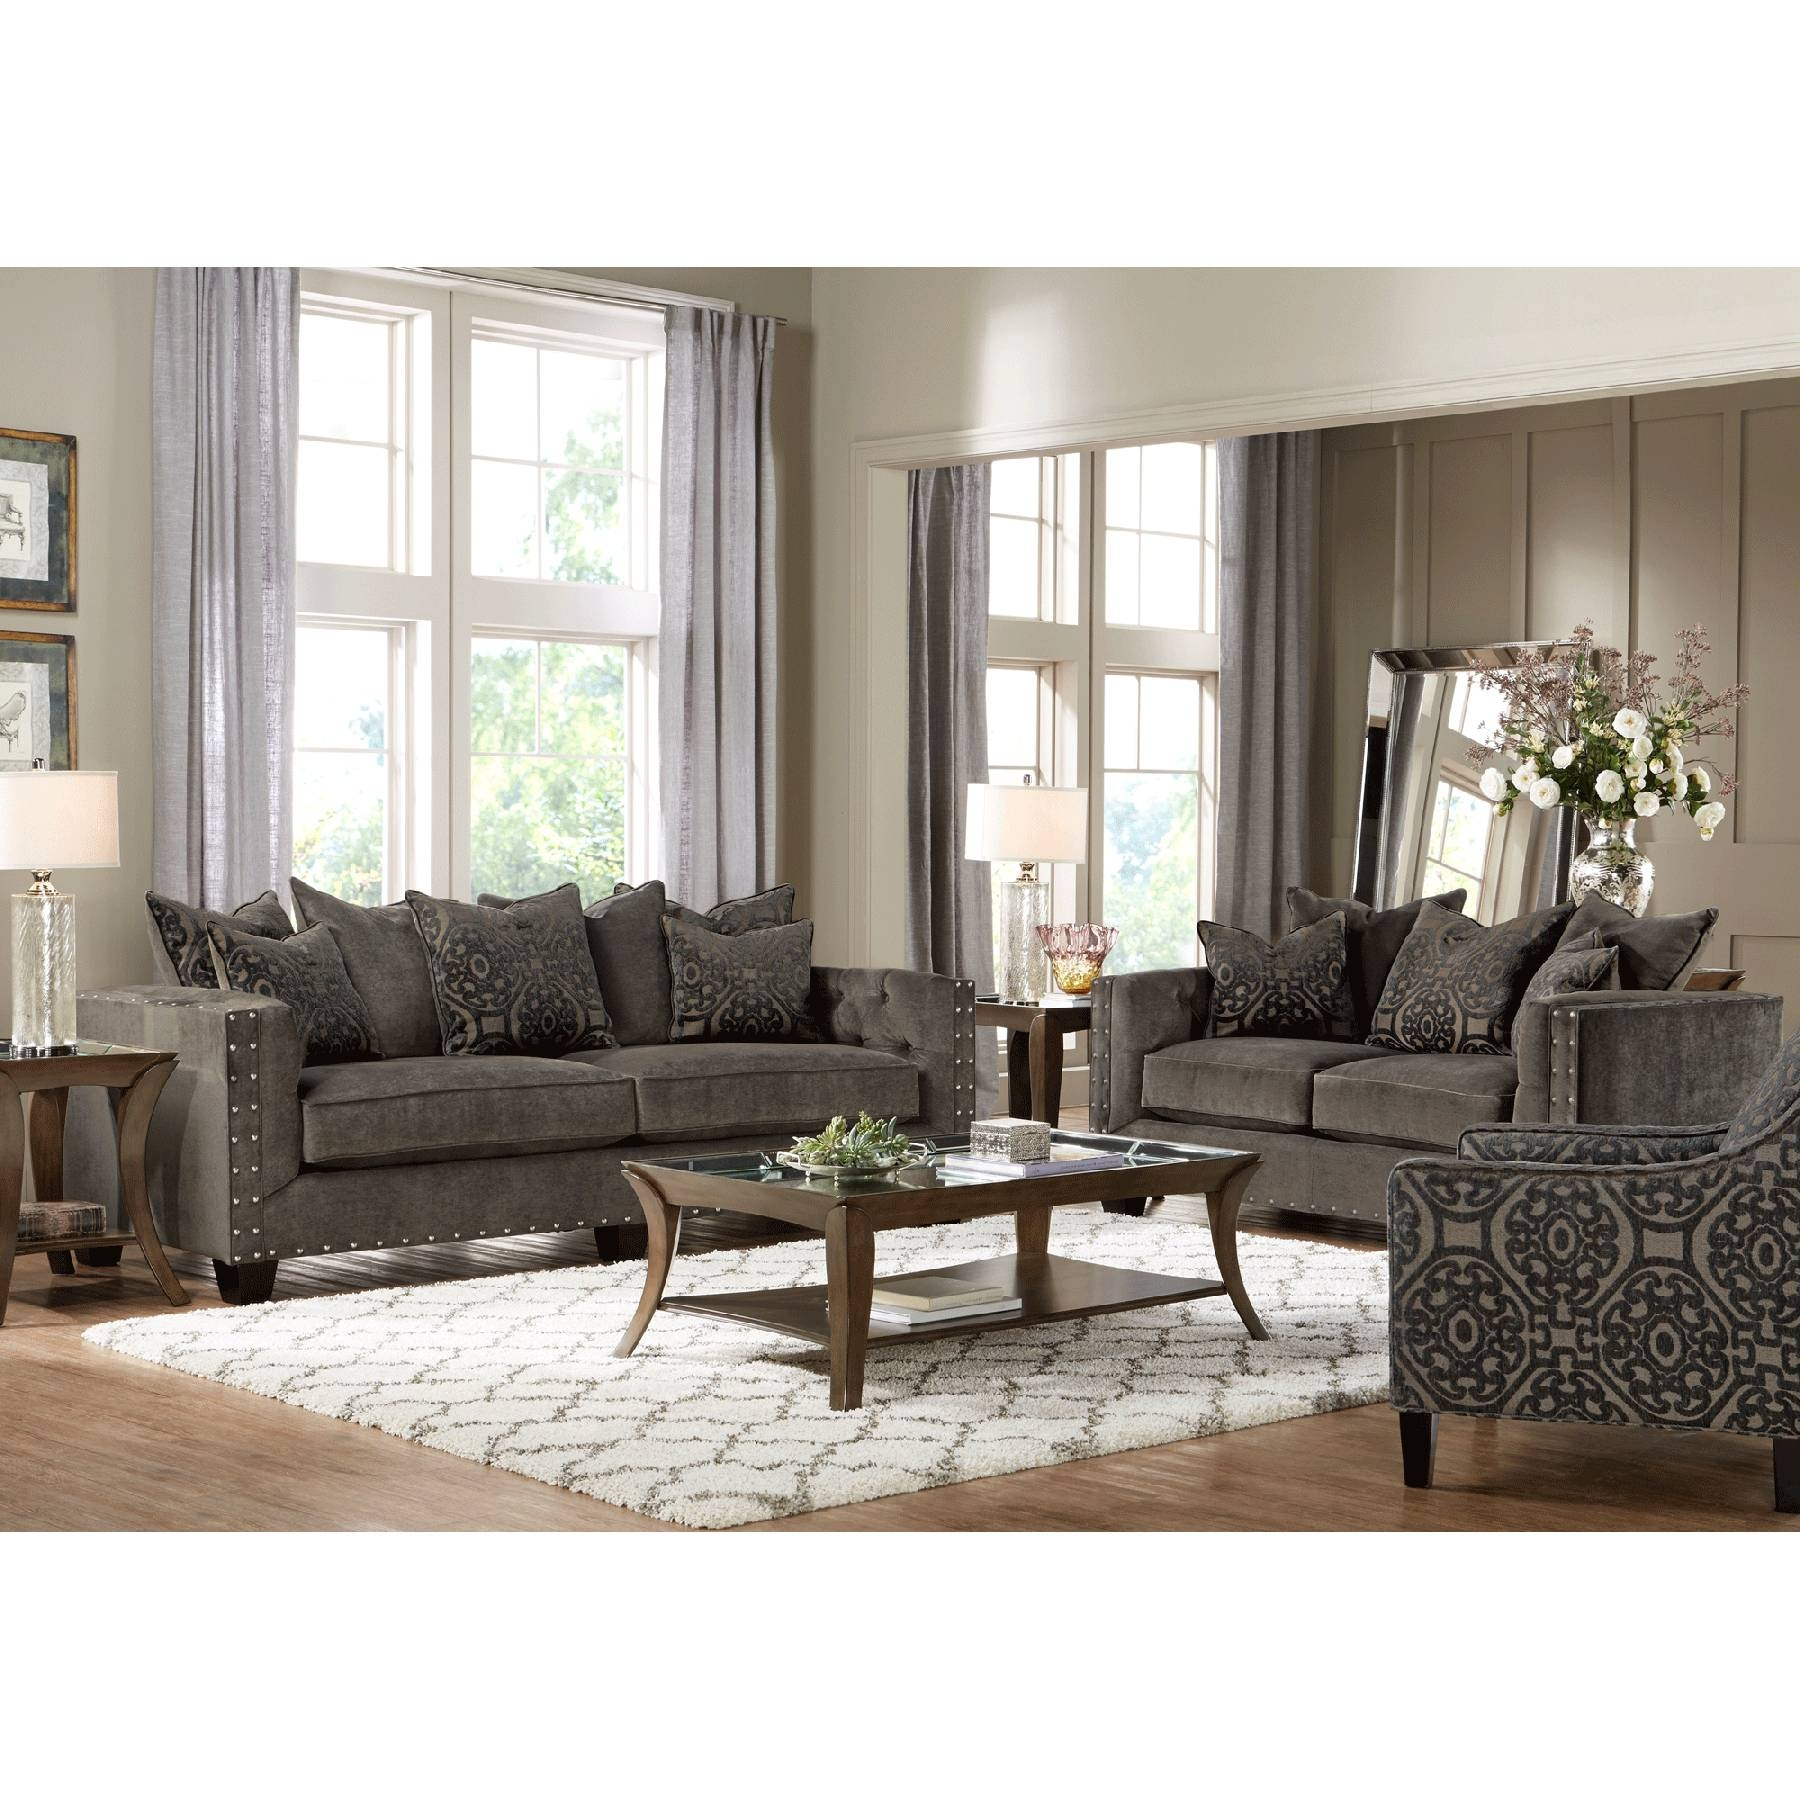 Furniture: Cindy Crawford Sectional Sofa For Elegant Living Room inside Cindy Crawford Home Sectional Sofa (Image 22 of 30)